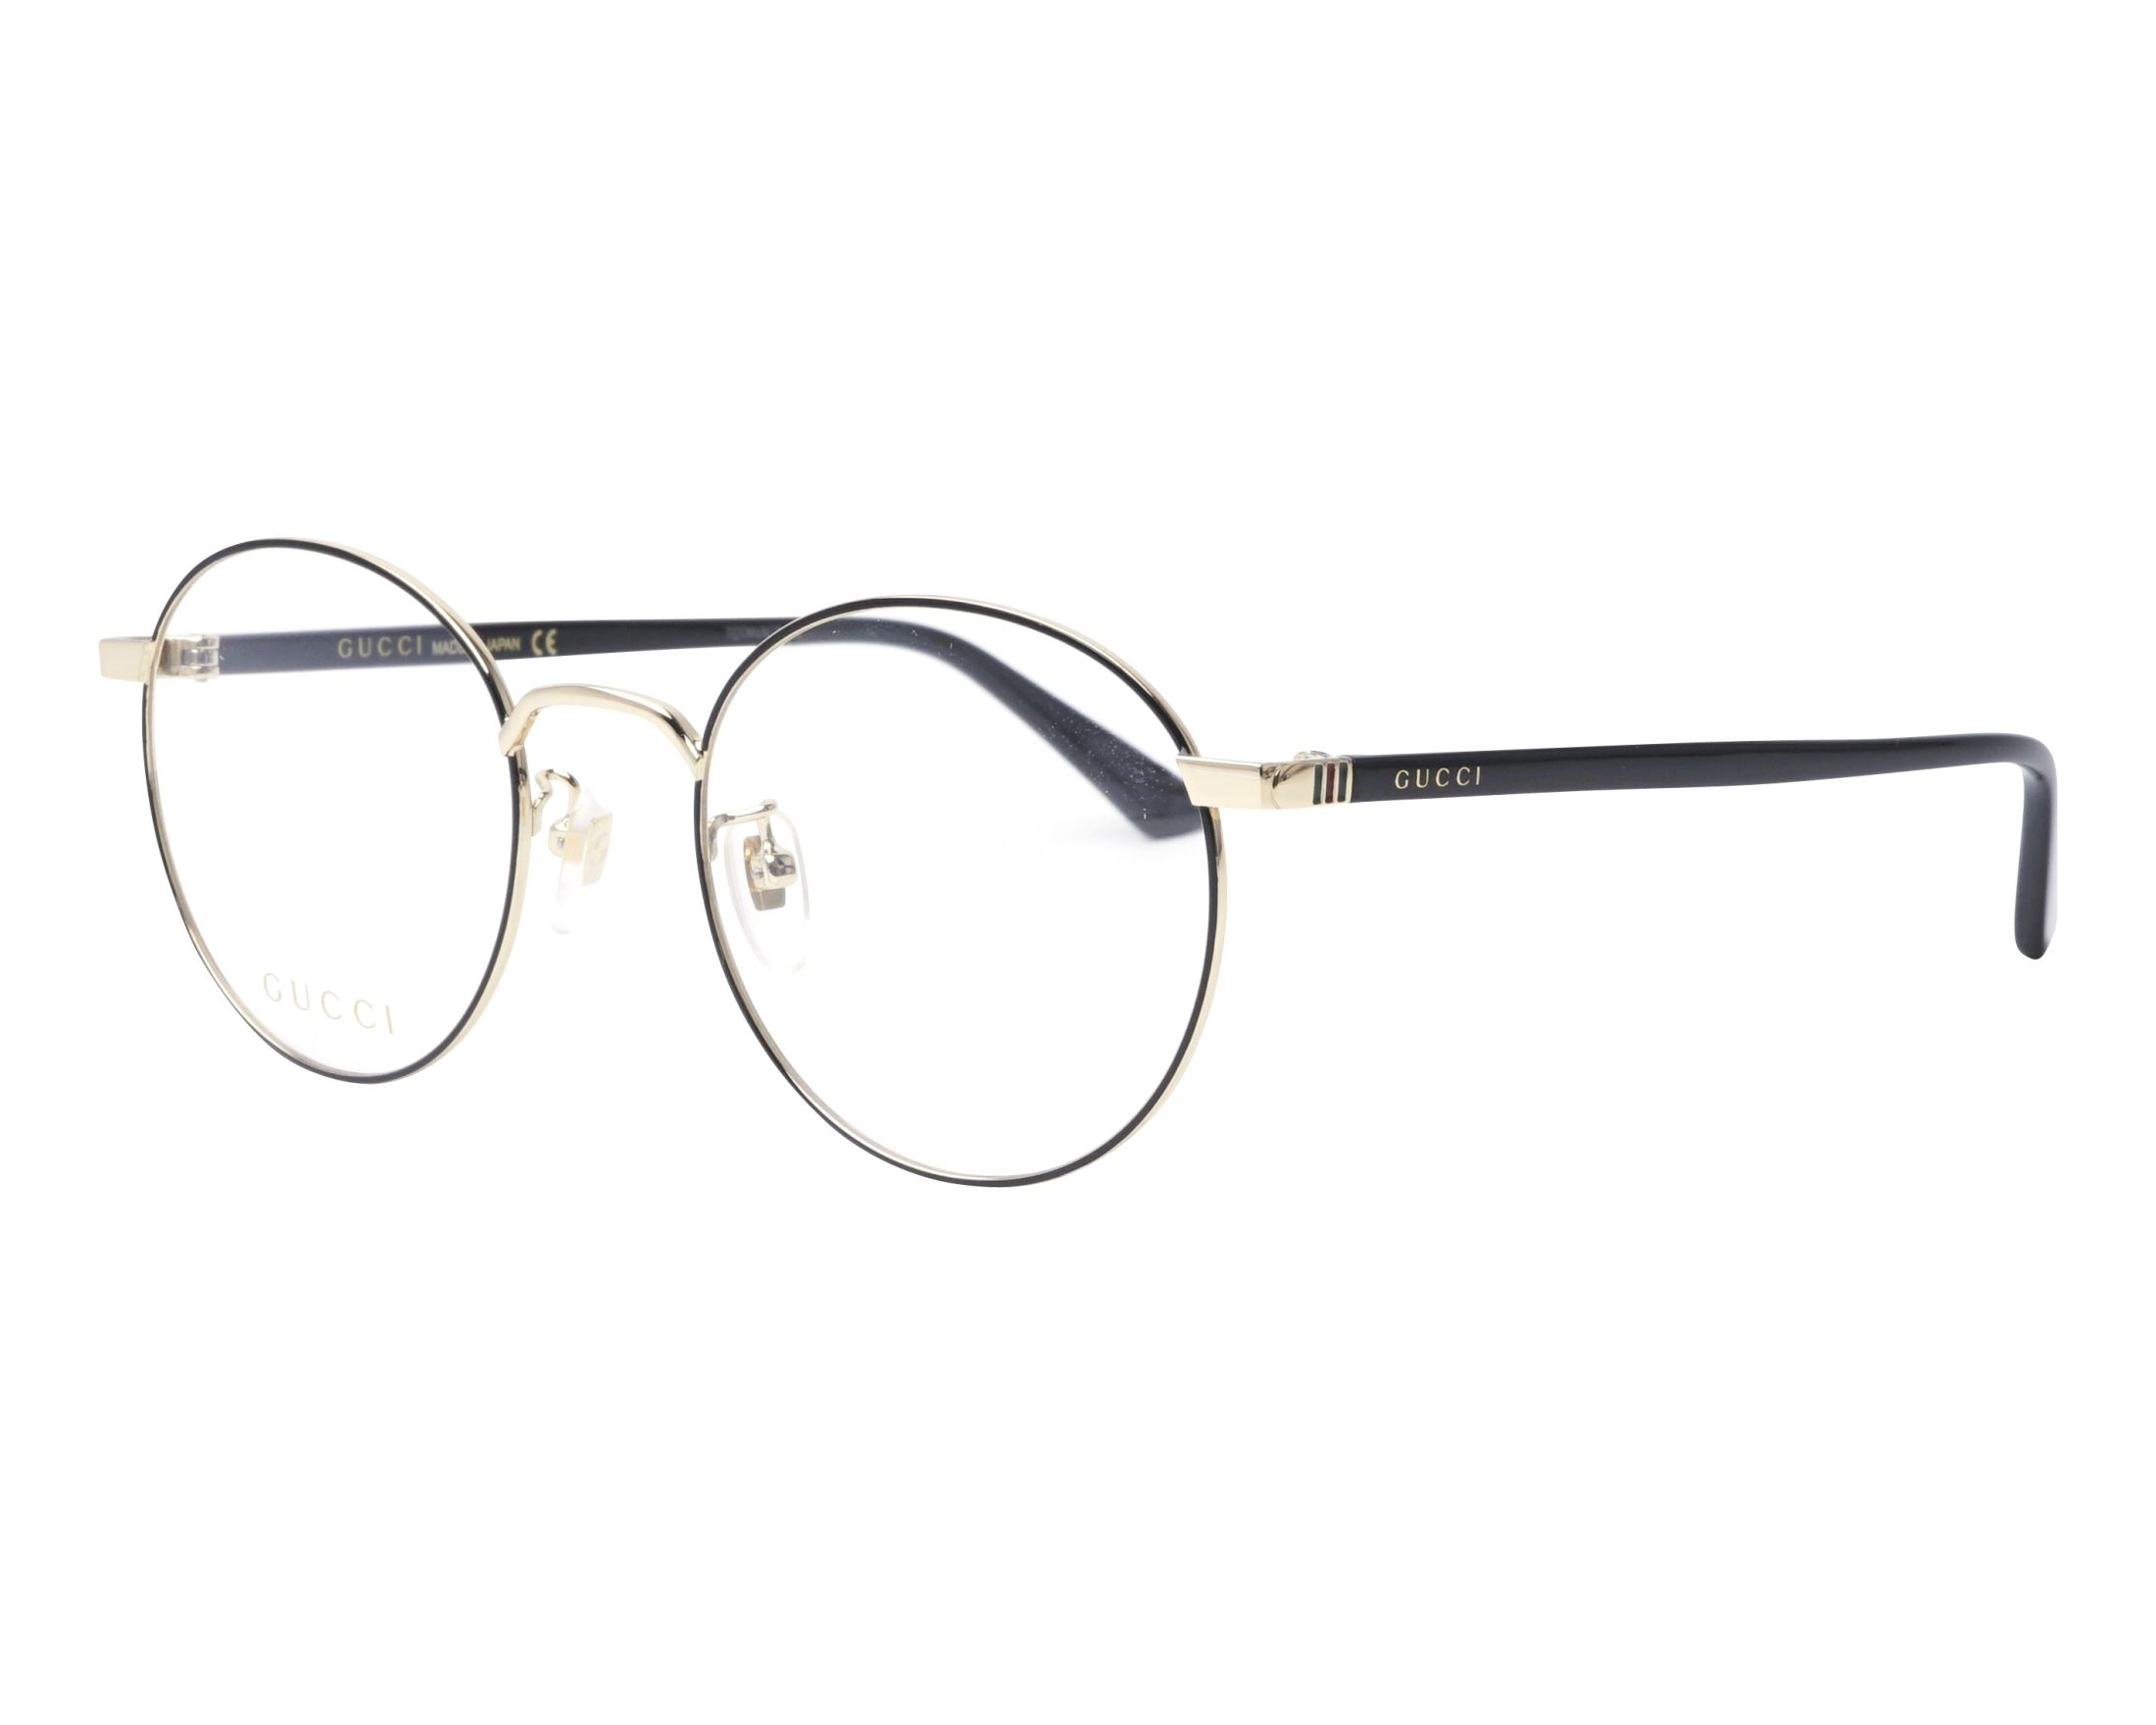 696fb41d860 Gucci Eyeglasses Gg 0297 Ok 003 Visionet. Preview gucci g3565 lady s  optical glasses frame black 4 colors available gucci gg 0011 o 005 55 17  black profile ...